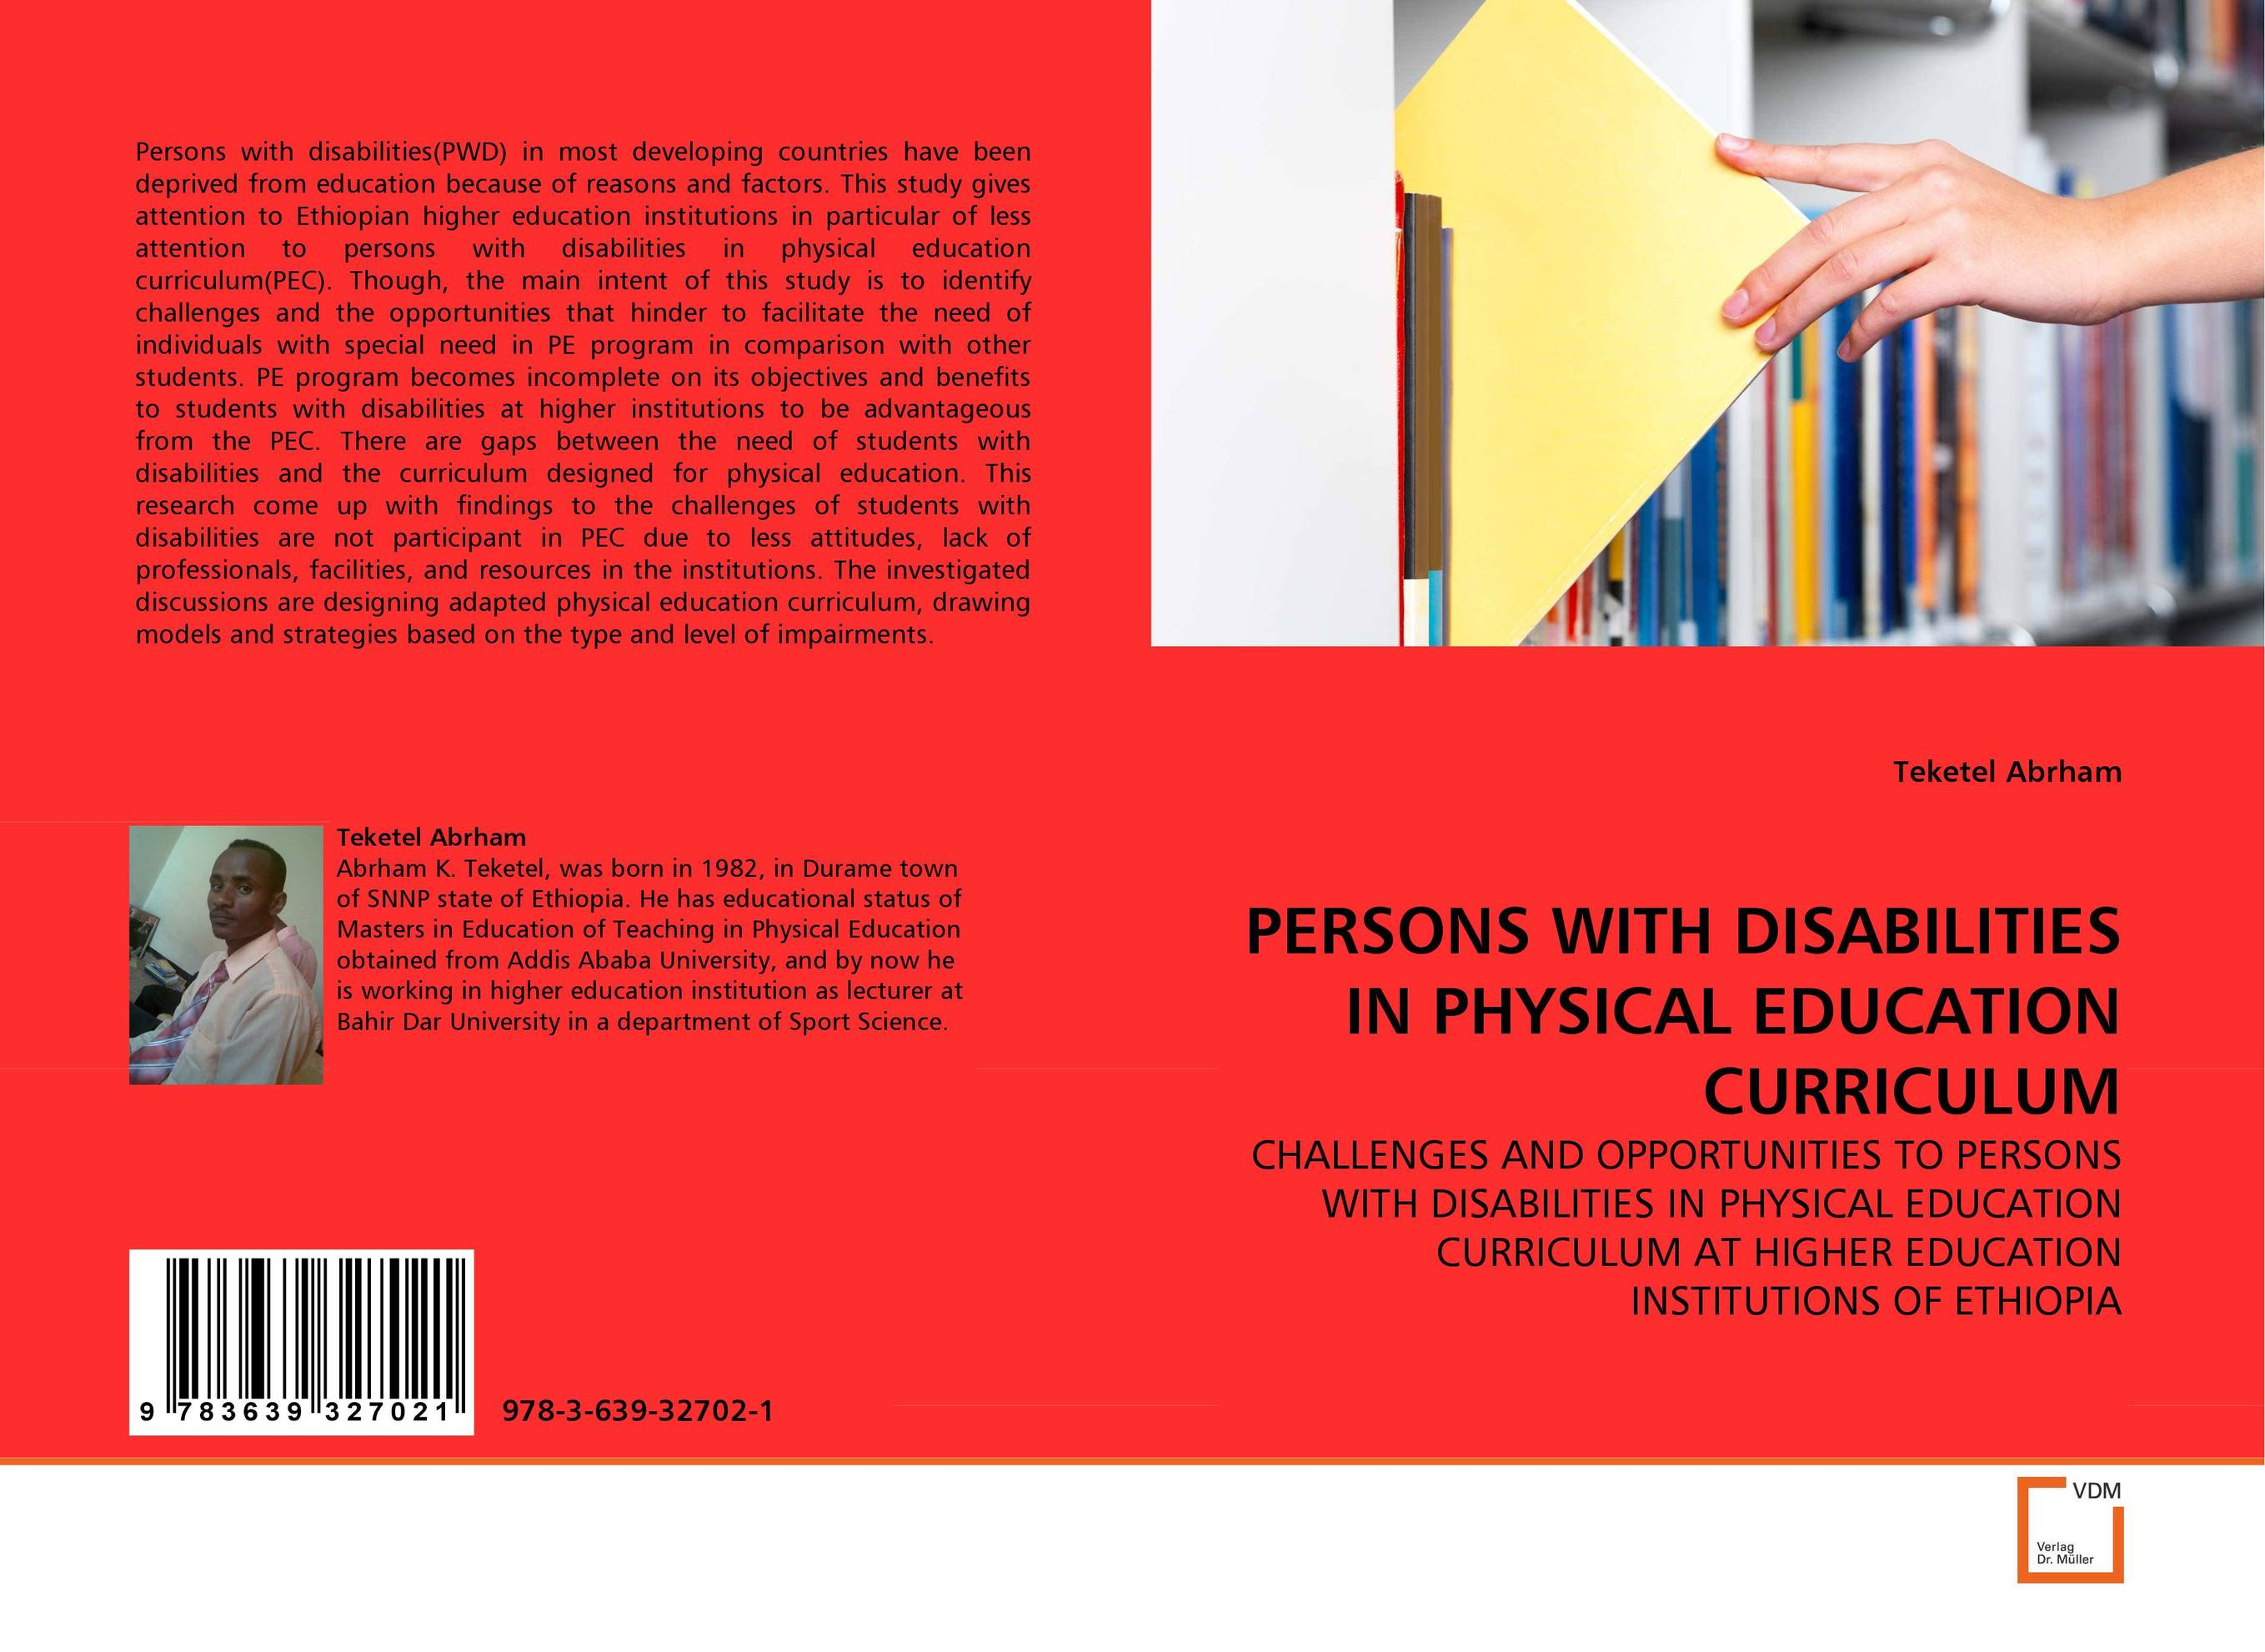 PERSONS WITH DISABILITIES IN PHYSICAL EDUCATION CURRICULUM  demdeo durge physical fitness and physiological parameters of sport persons